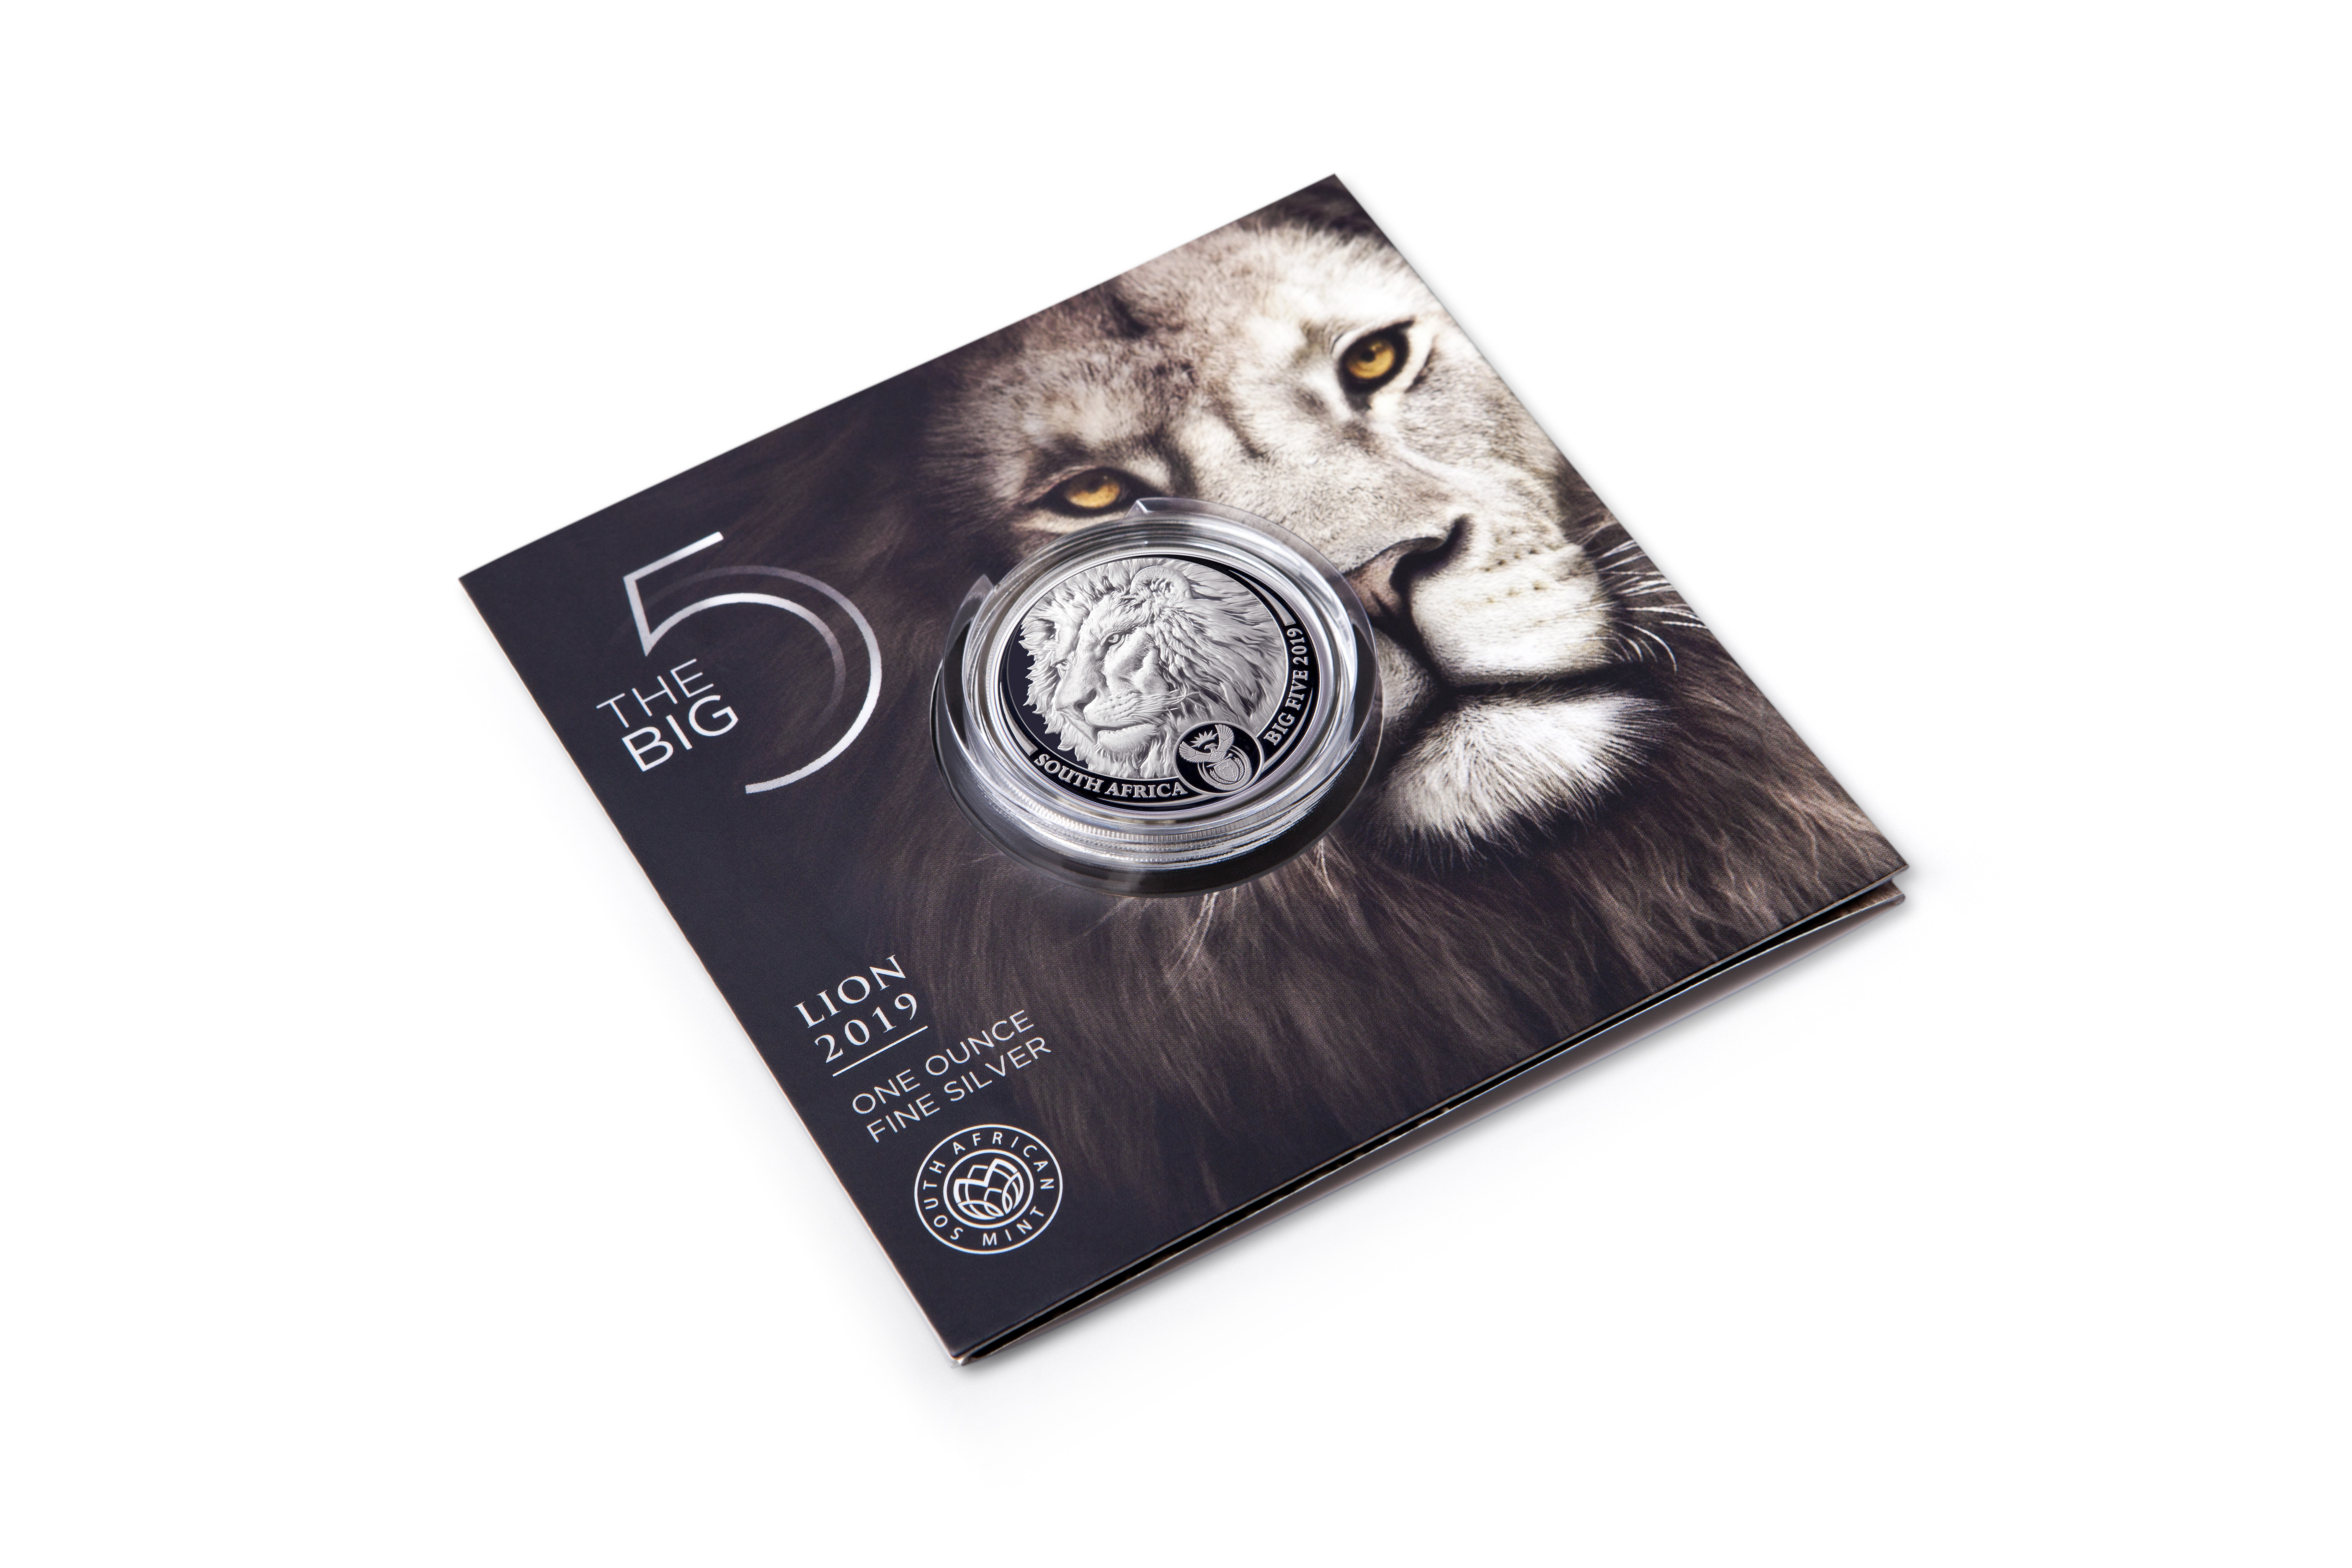 2019 BIG 5 LION BU 1 OZ SILVER COIN AG 999 (Coin 2 of 5) IN STOCK